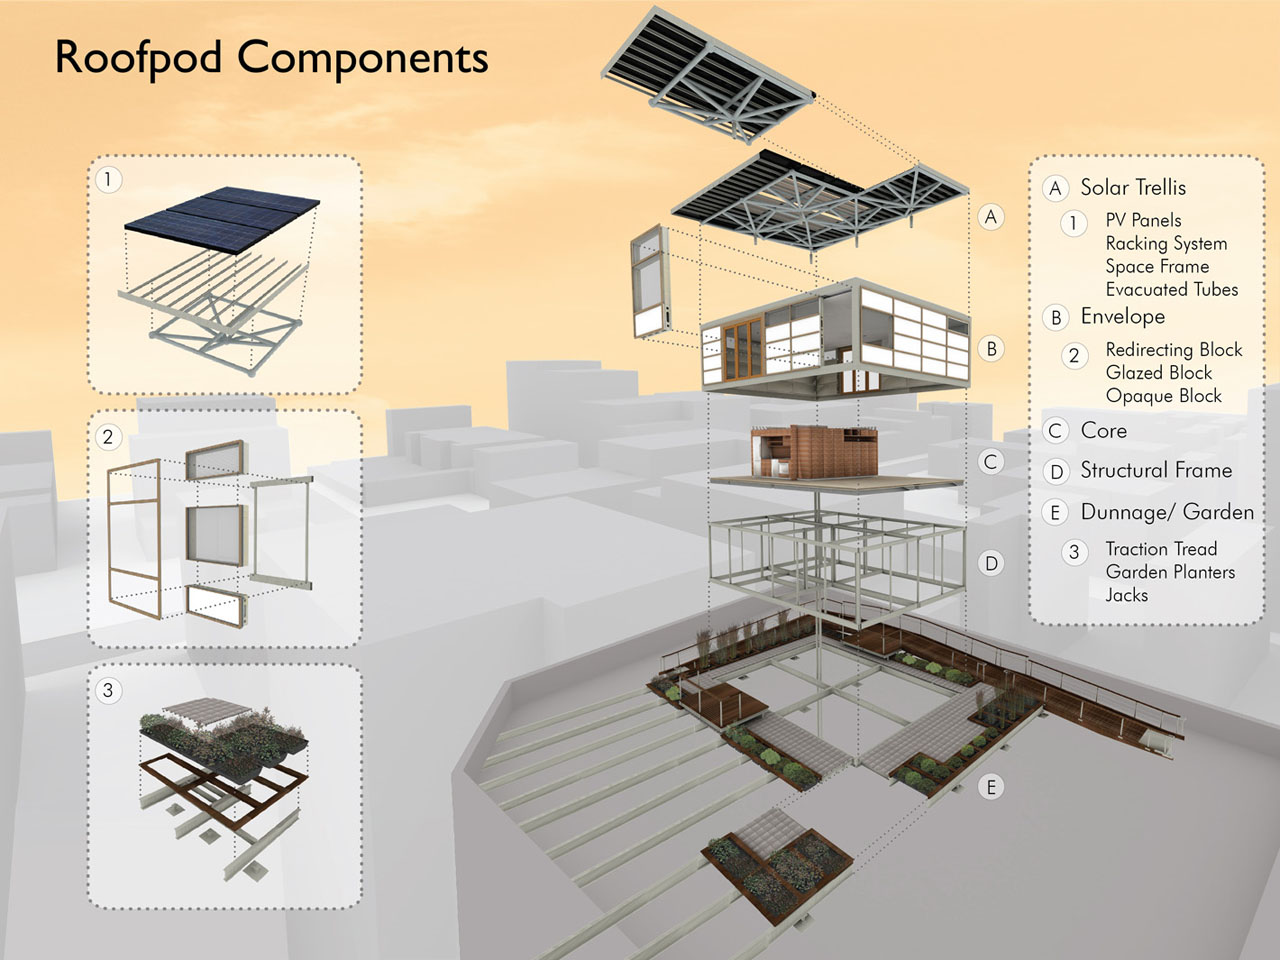 Solar Decathlon 2011 Team New York's Solar Roof Pod component diagram